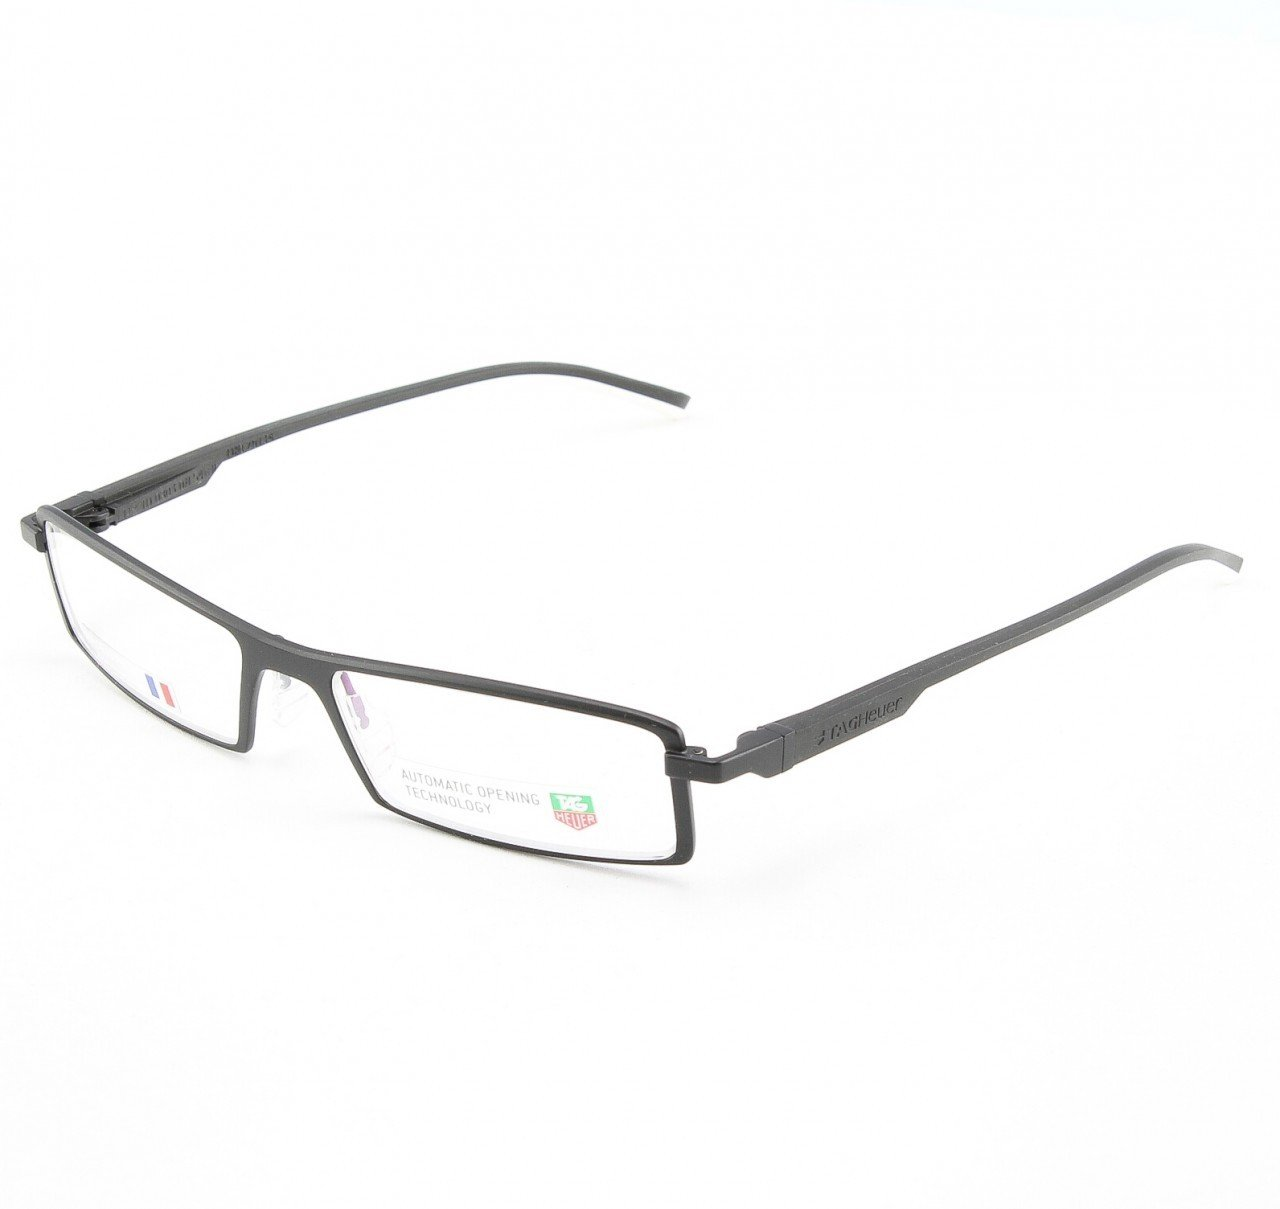 TAG Heuer 803 Uni Eyeglasses Col. 11 Black and White with Clear Lenses